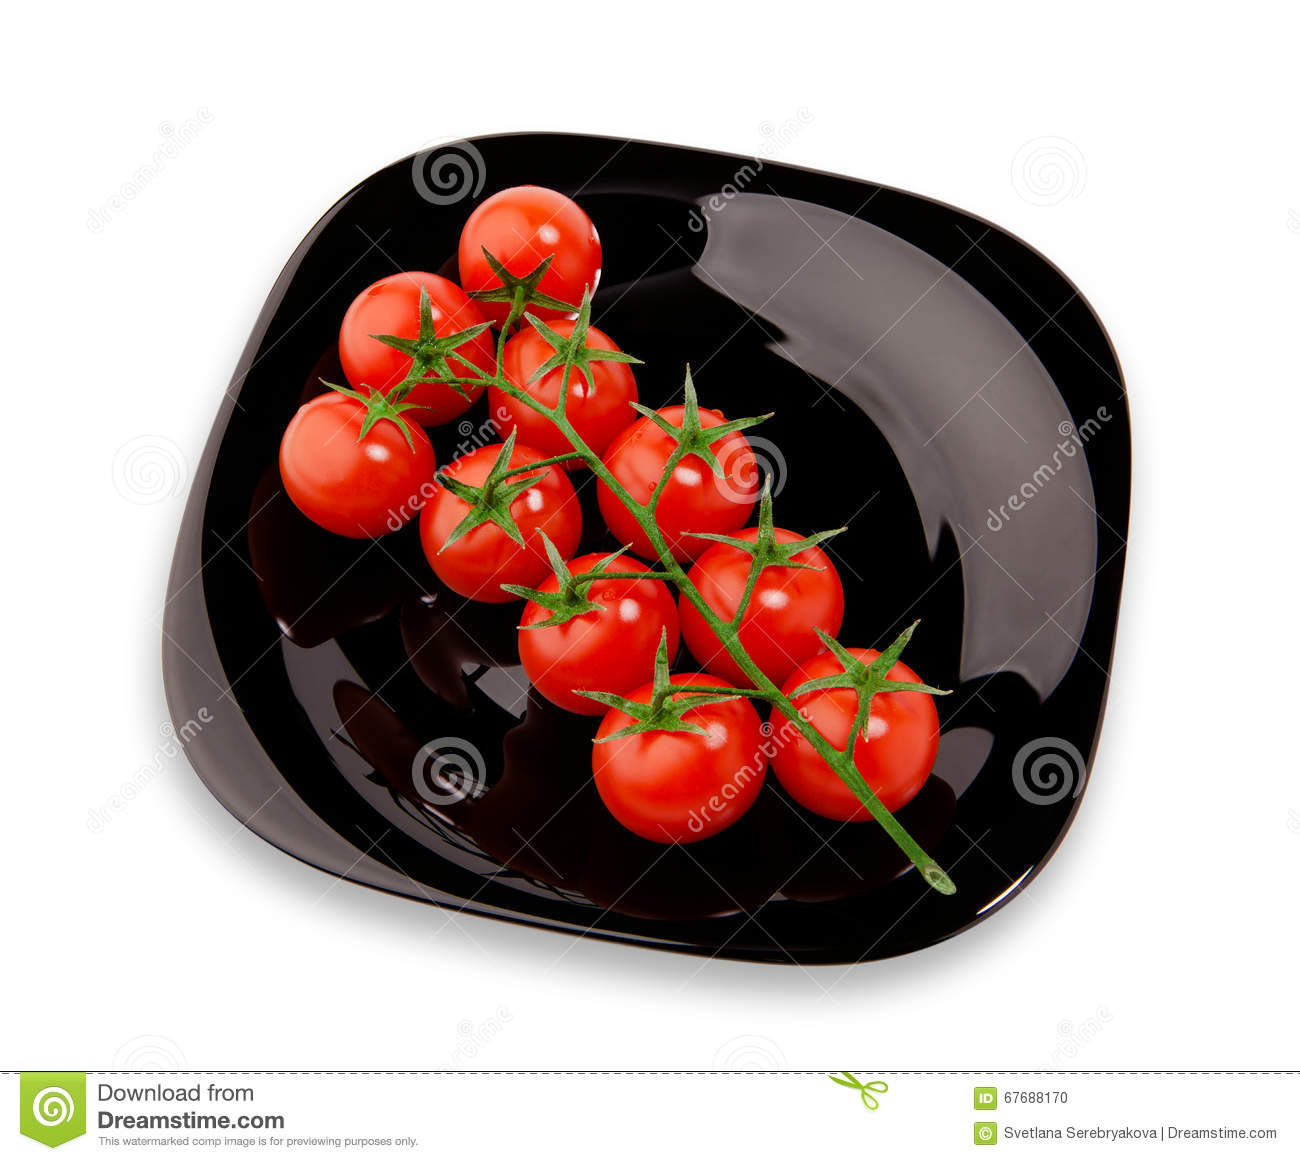 Cherry tomatoes on the black plate